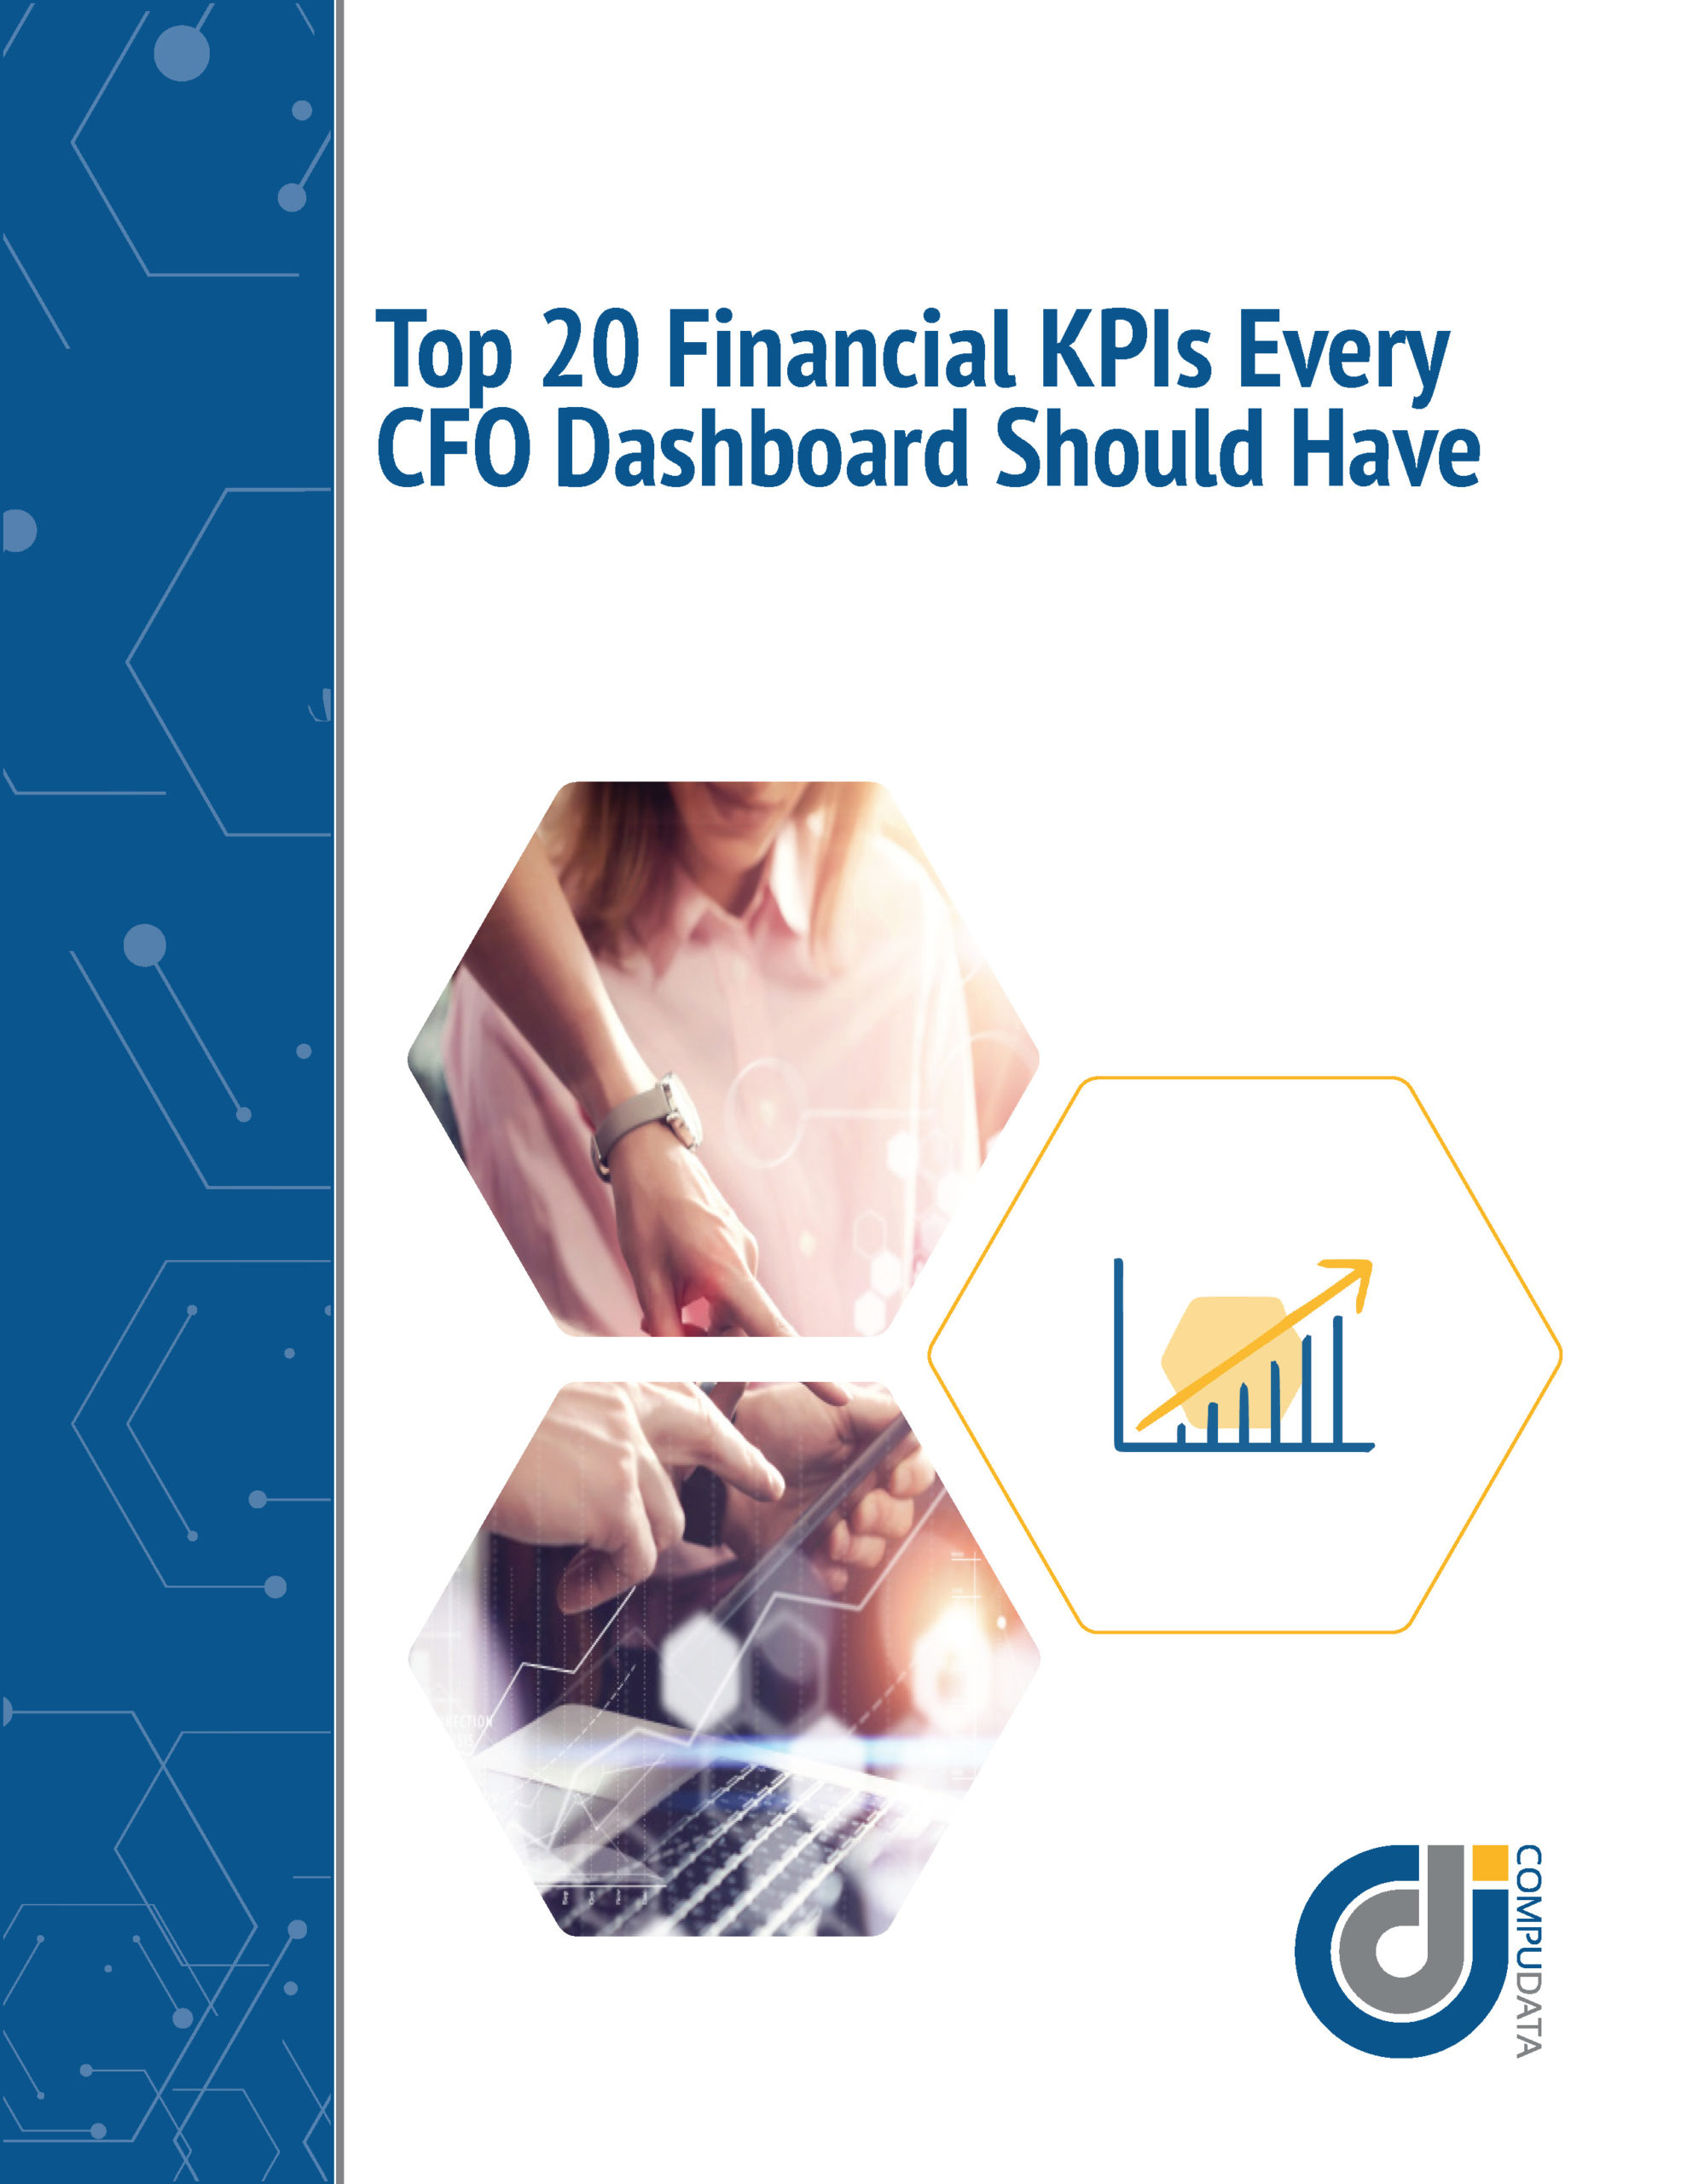 Top 20 Financial KPIs Every CFO Dashboard Should Have